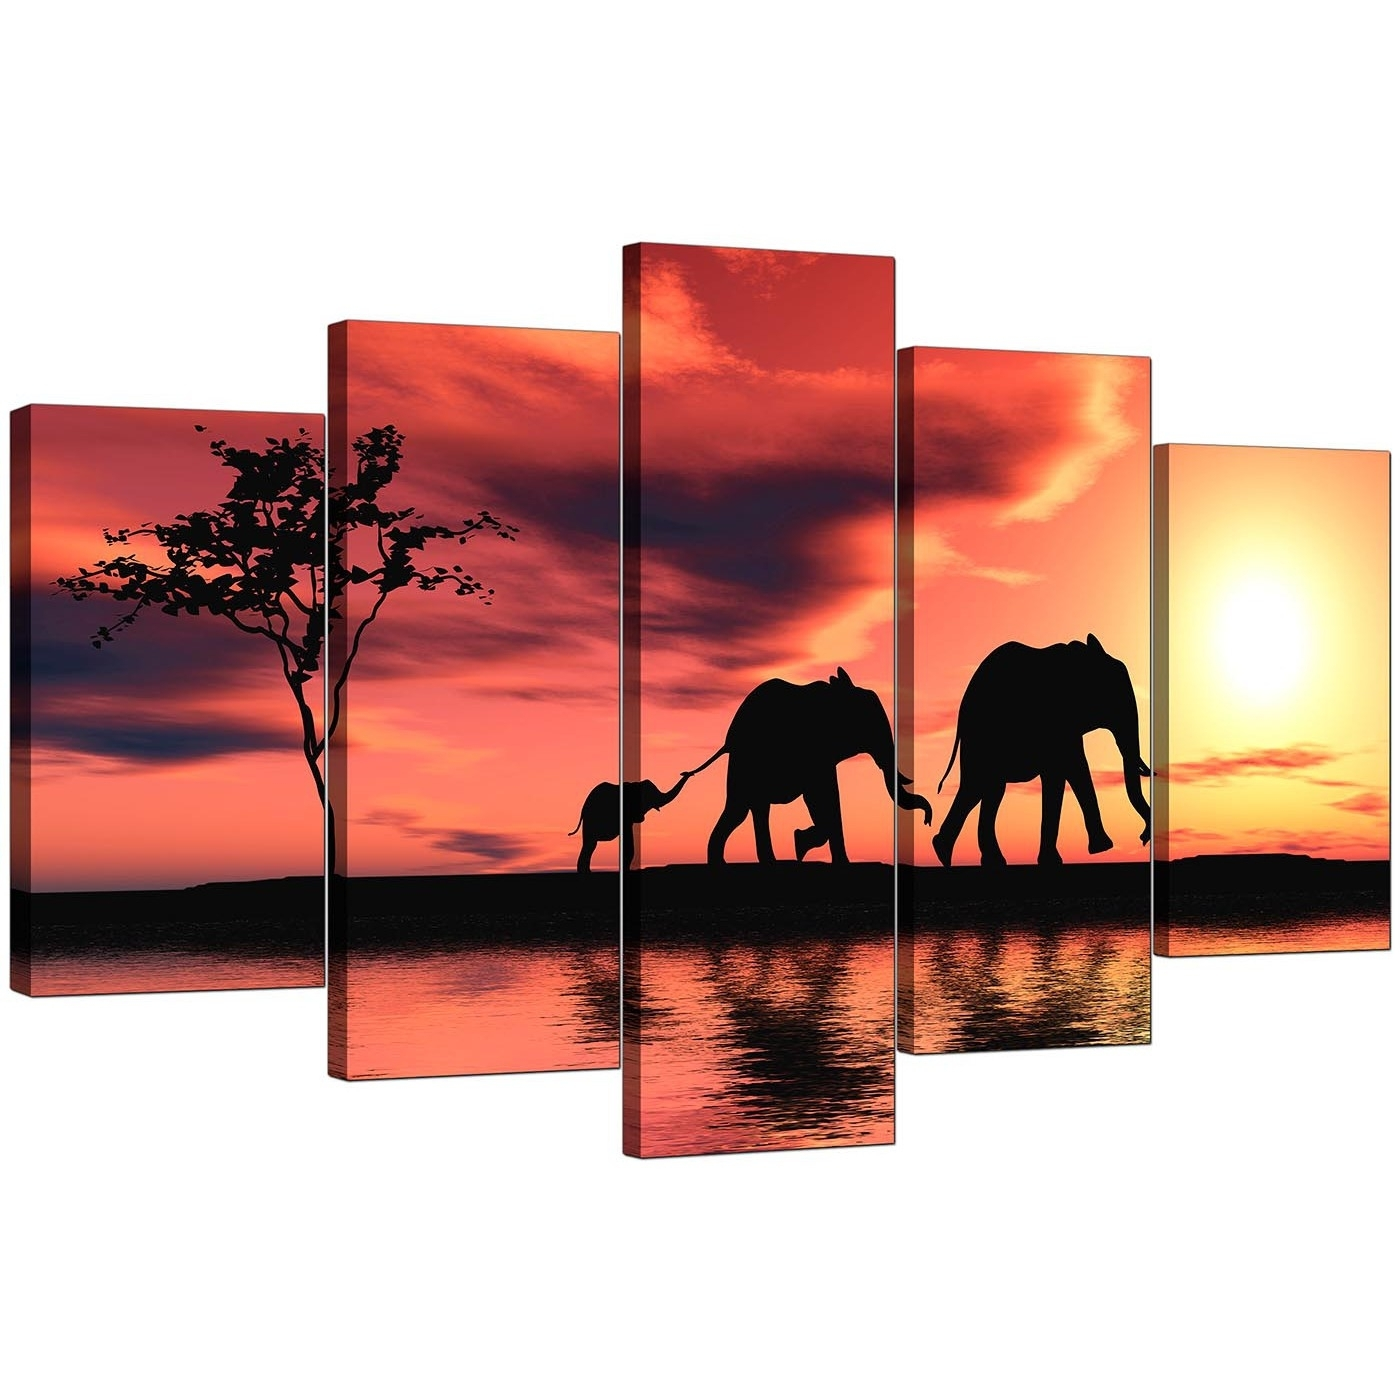 Extra Large Elephants Canvas Prints 5 Piece In Orange with Extra Large Wall Art (Image 8 of 20)